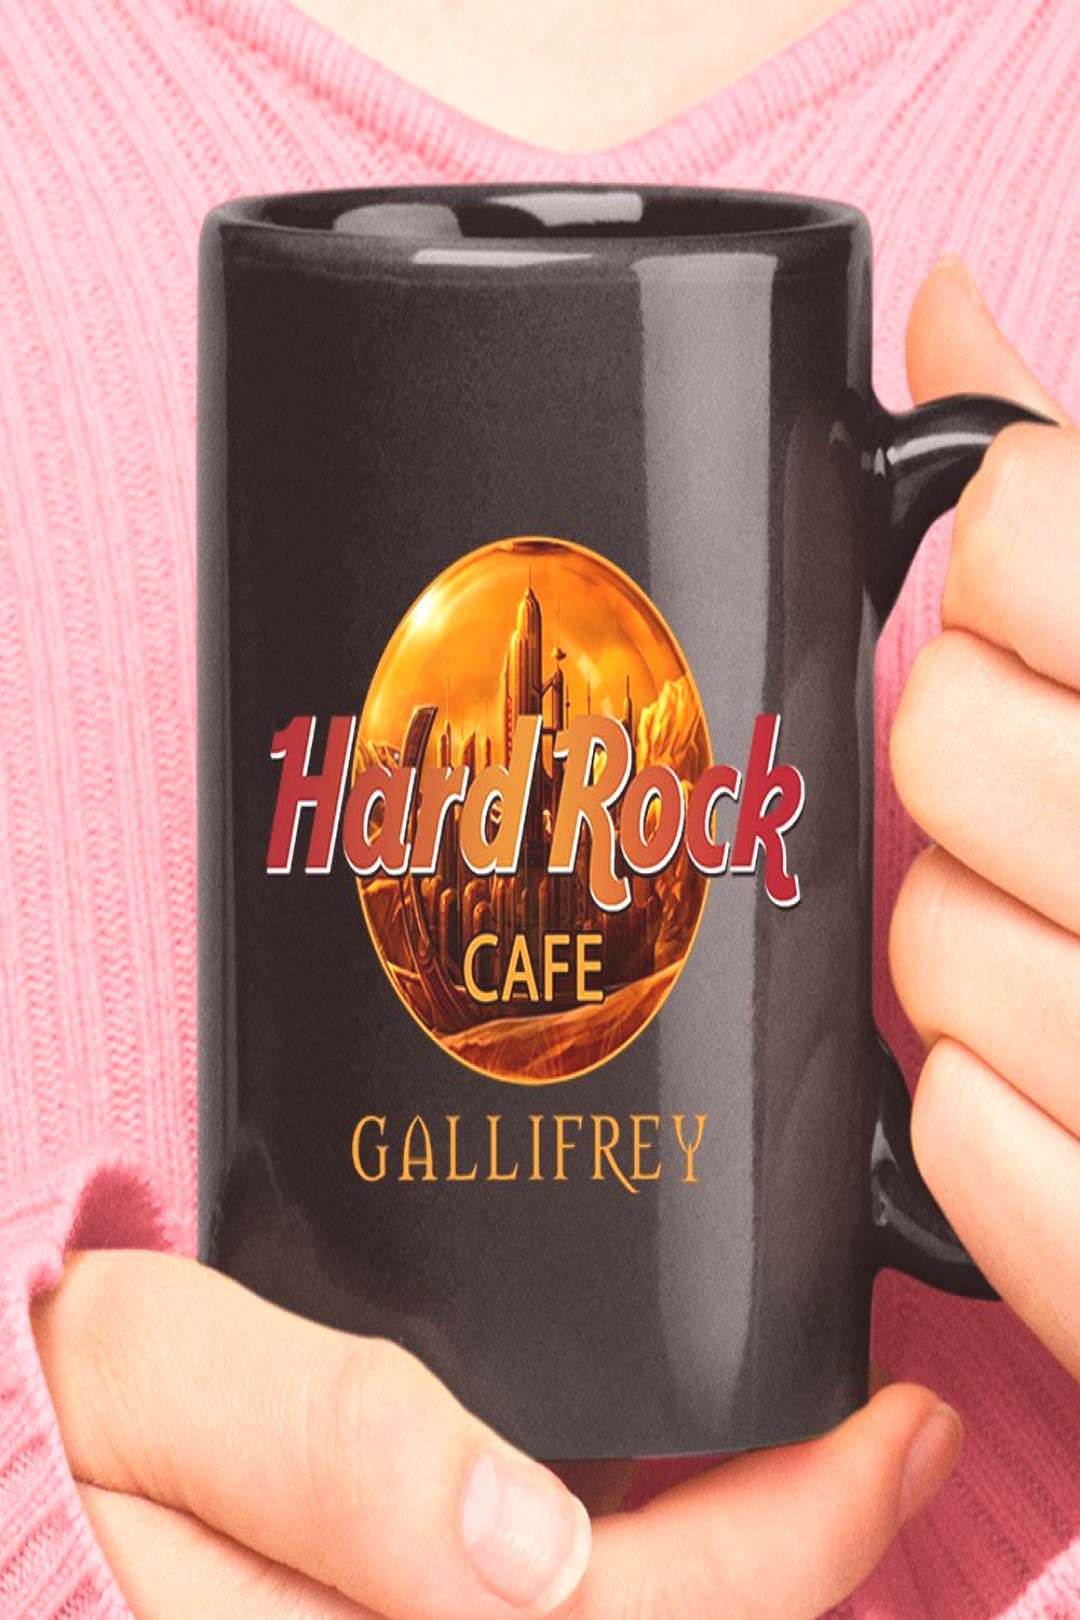 Hard Rock Cafe Gallifrey Doctor Who Mug - Snoopy Facts